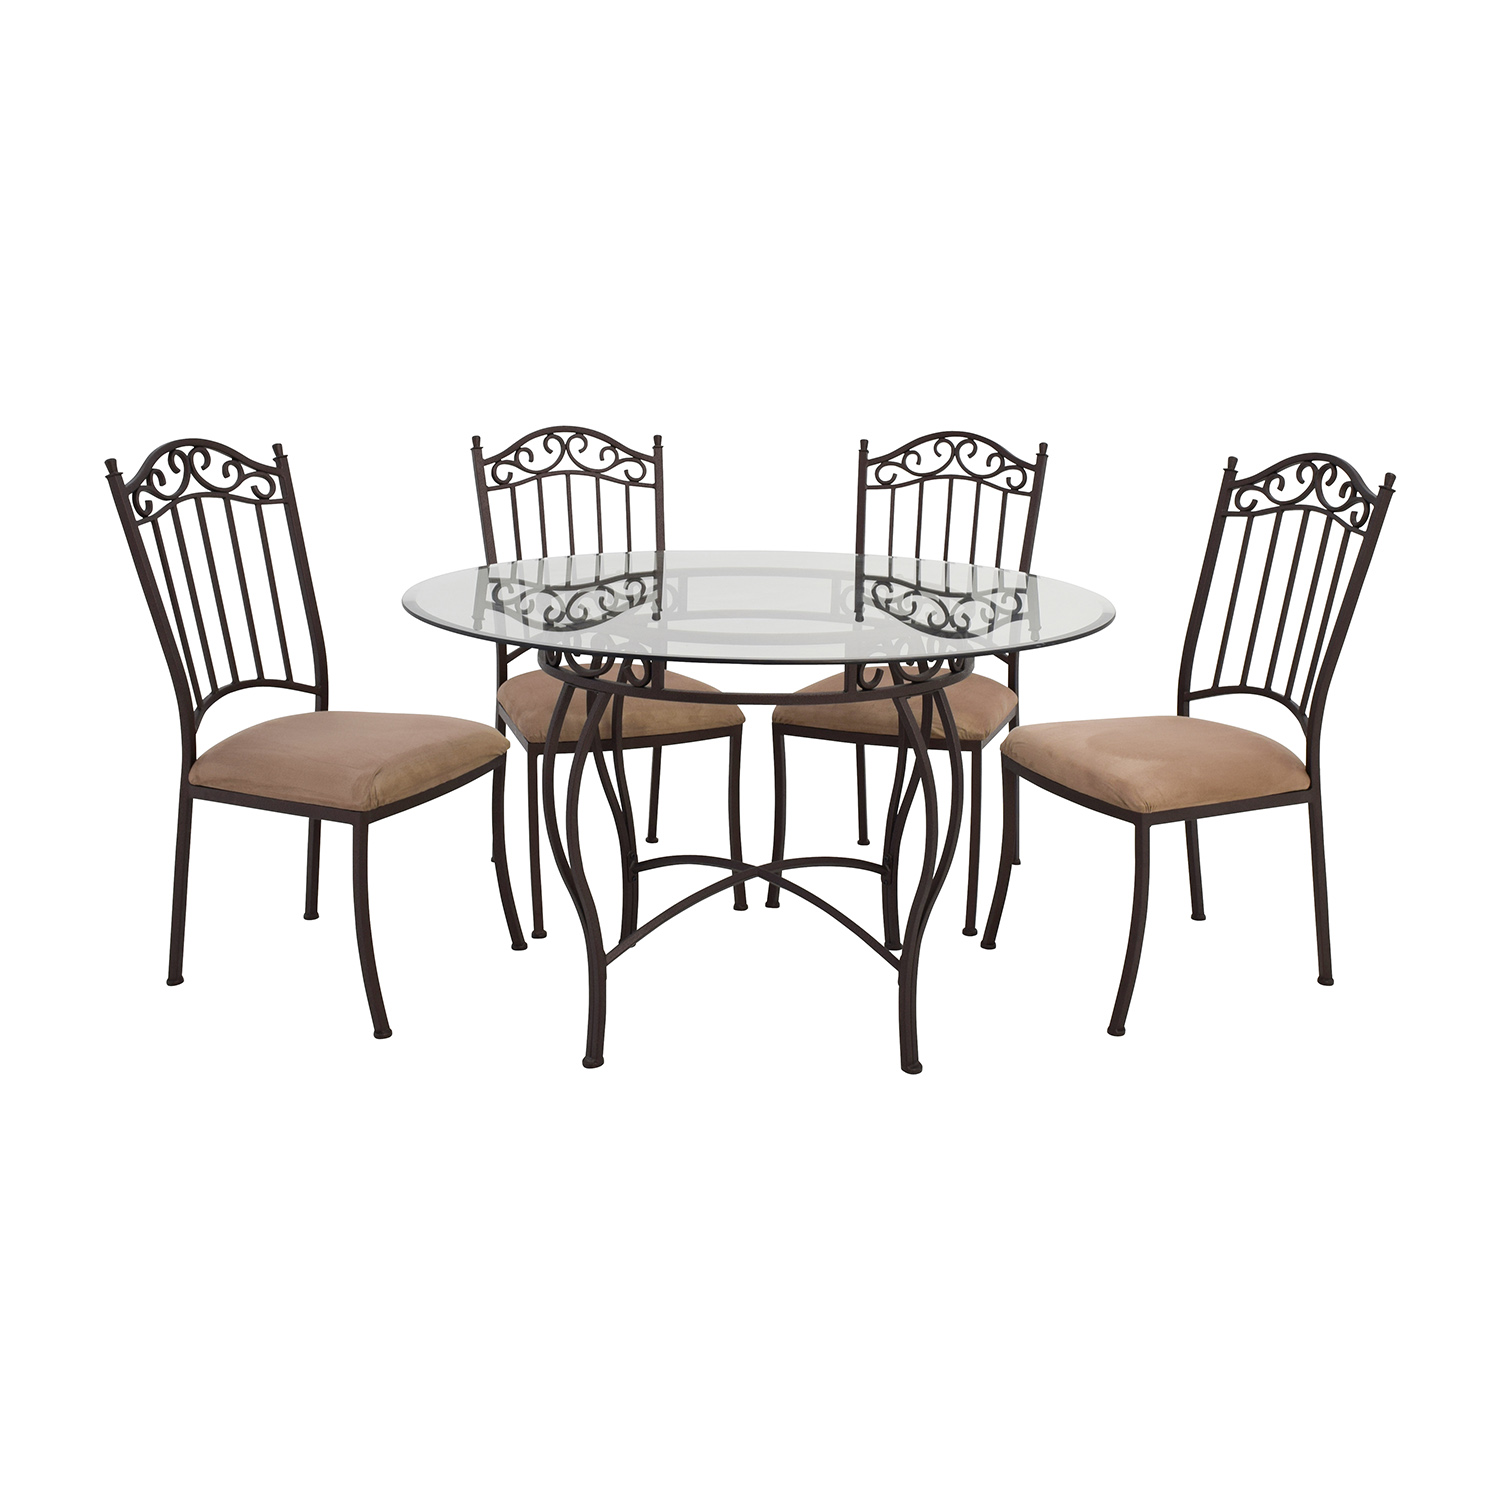 Wrought Iron Table And Chairs 72 Off Wrought Iron Round Glass Table And Chairs Tables